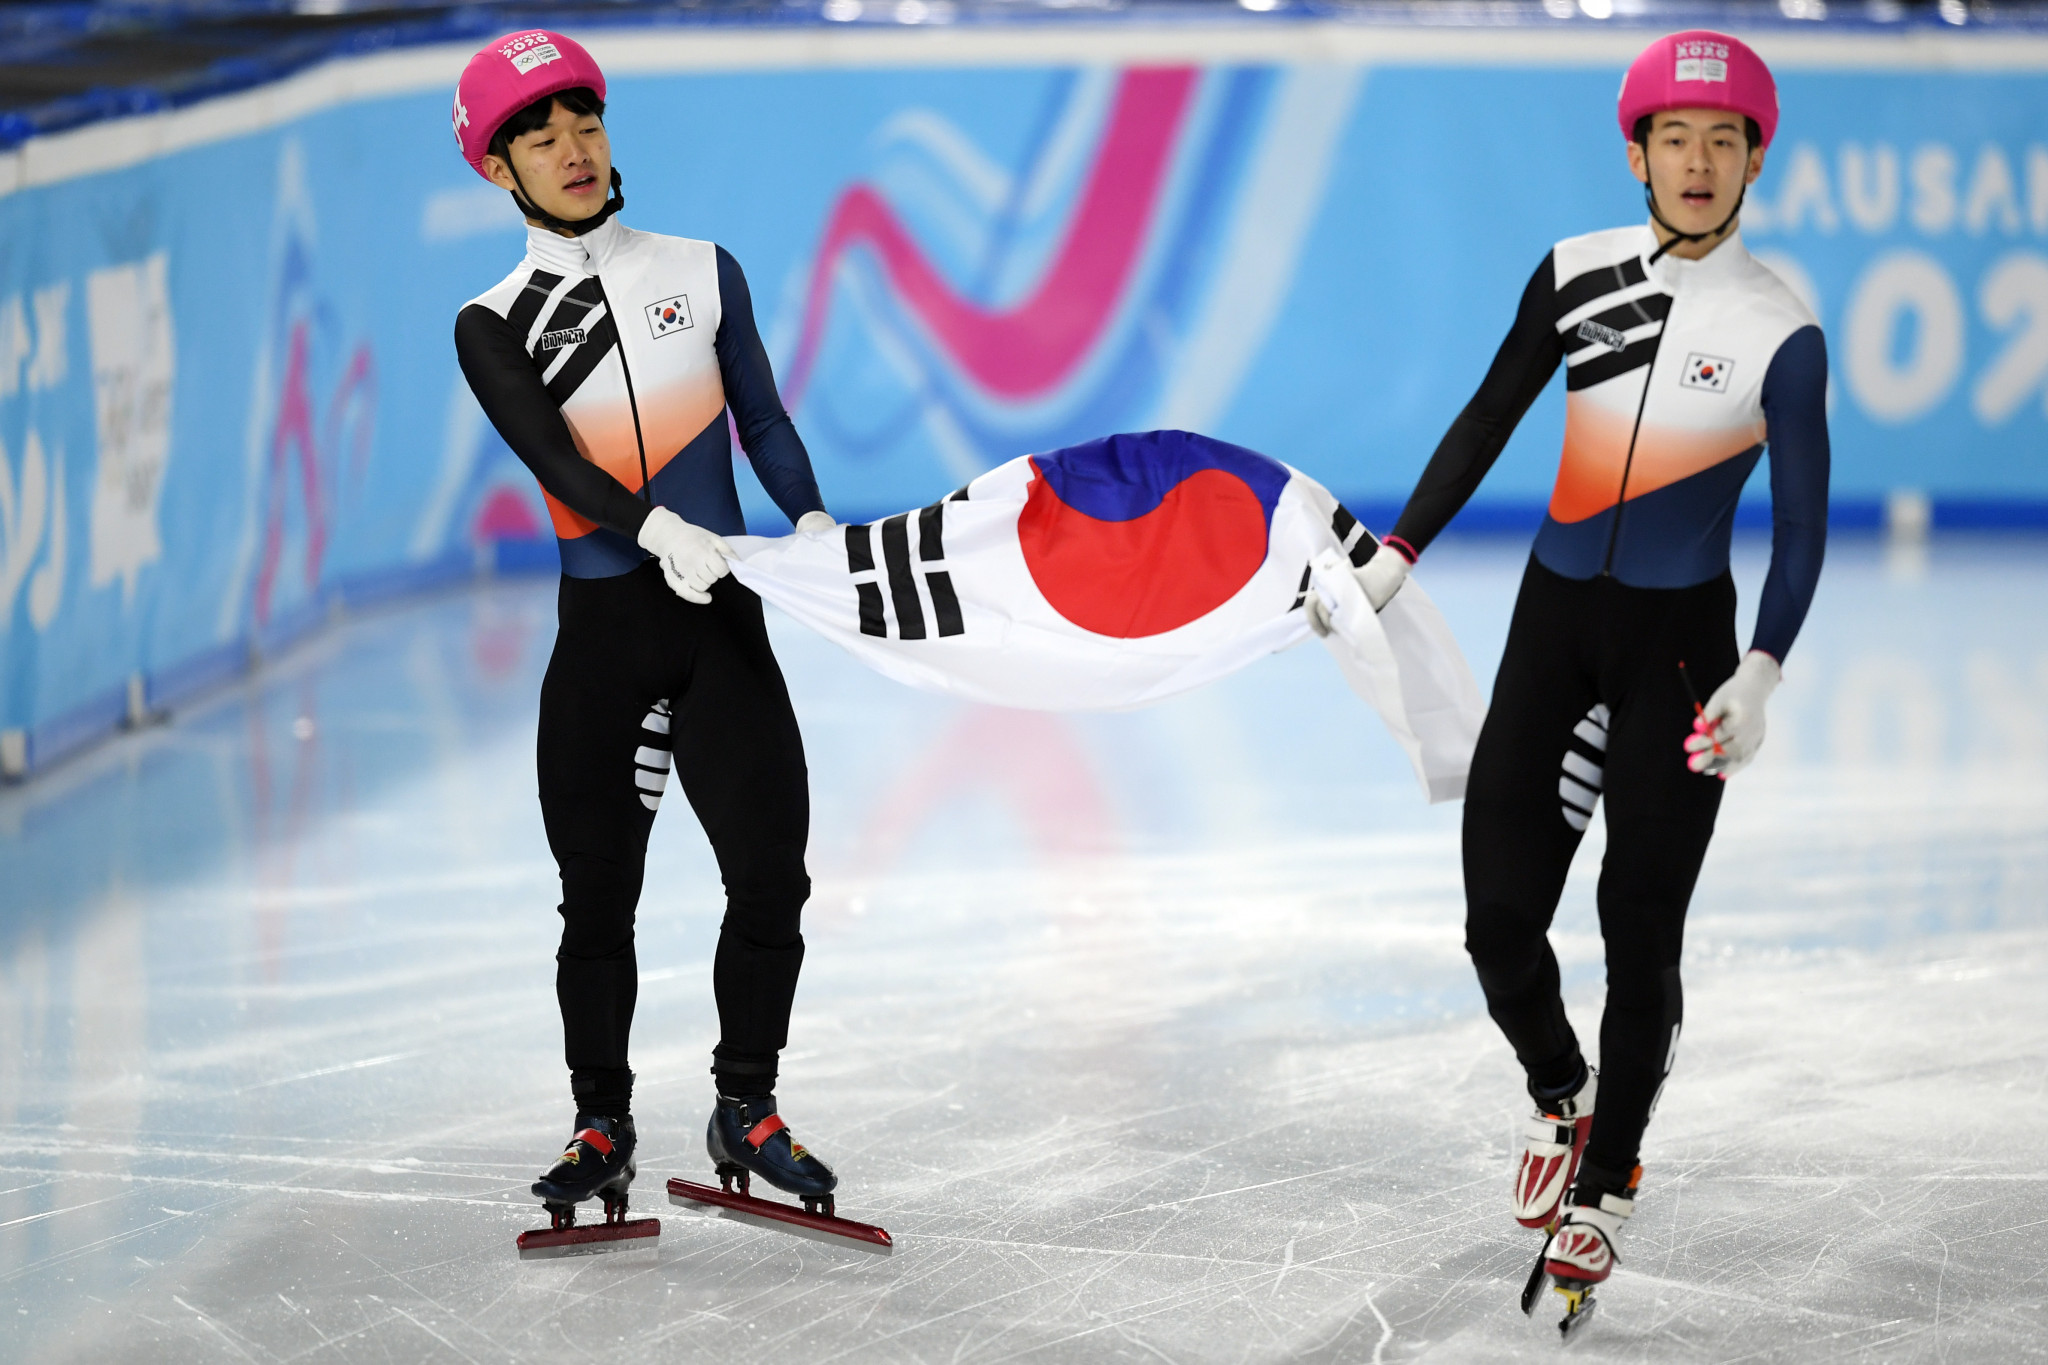 South Korea celebrated a one-two in the men's 500m event at the Winter Youth Olympic Games ©Getty Images